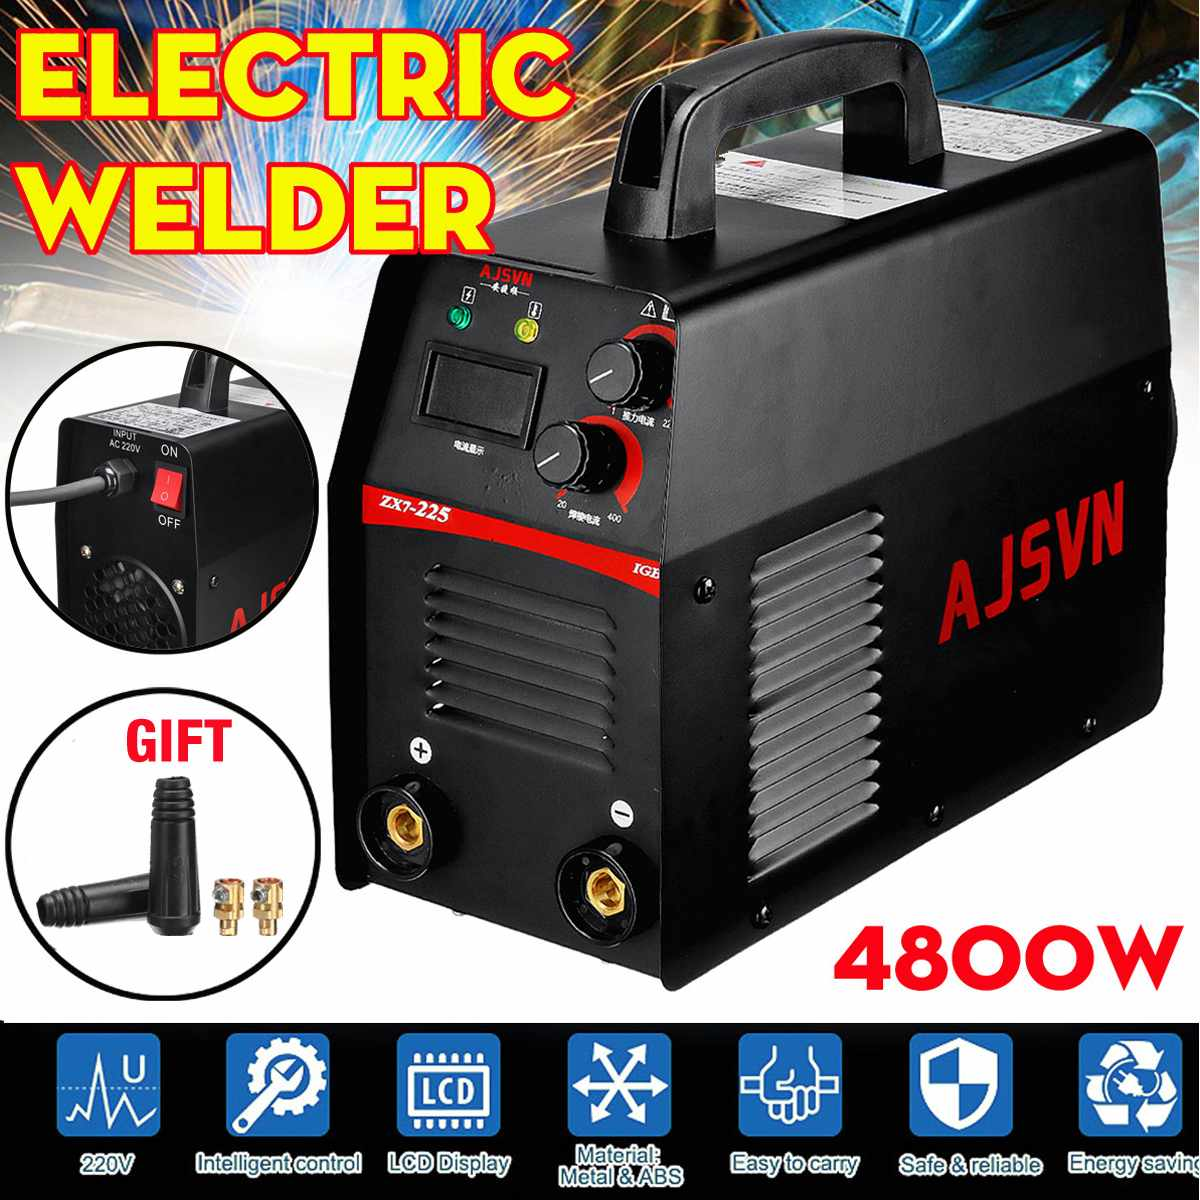 220V 20-225A Mini MMA Handheld Digital Electric IGBT Welder-Inverter MMA/ARC Welding Soldering Machine Tool 4800W220V 20-225A Mini MMA Handheld Digital Electric IGBT Welder-Inverter MMA/ARC Welding Soldering Machine Tool 4800W